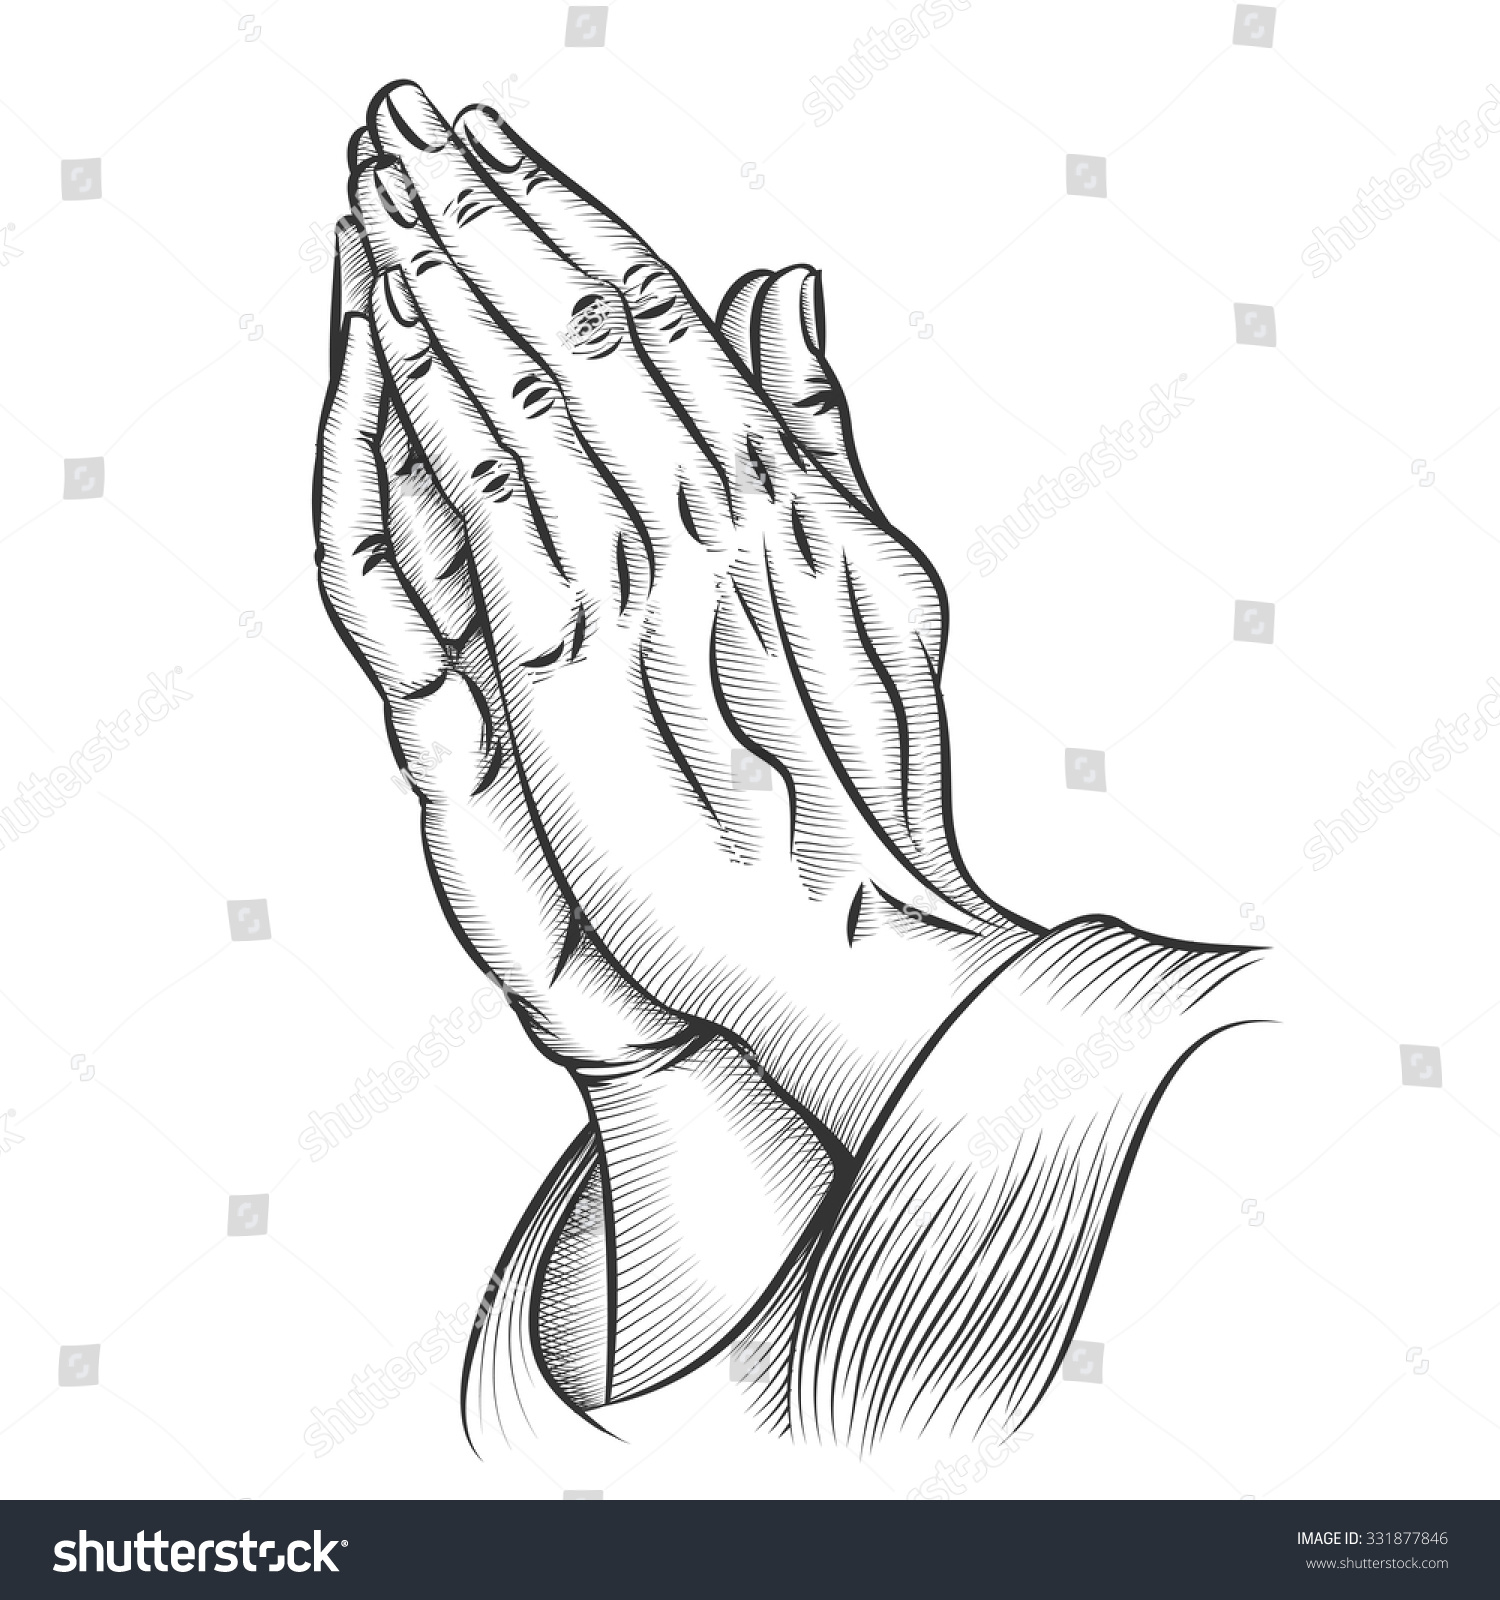 stock-vector-praying-hands-religion-and-